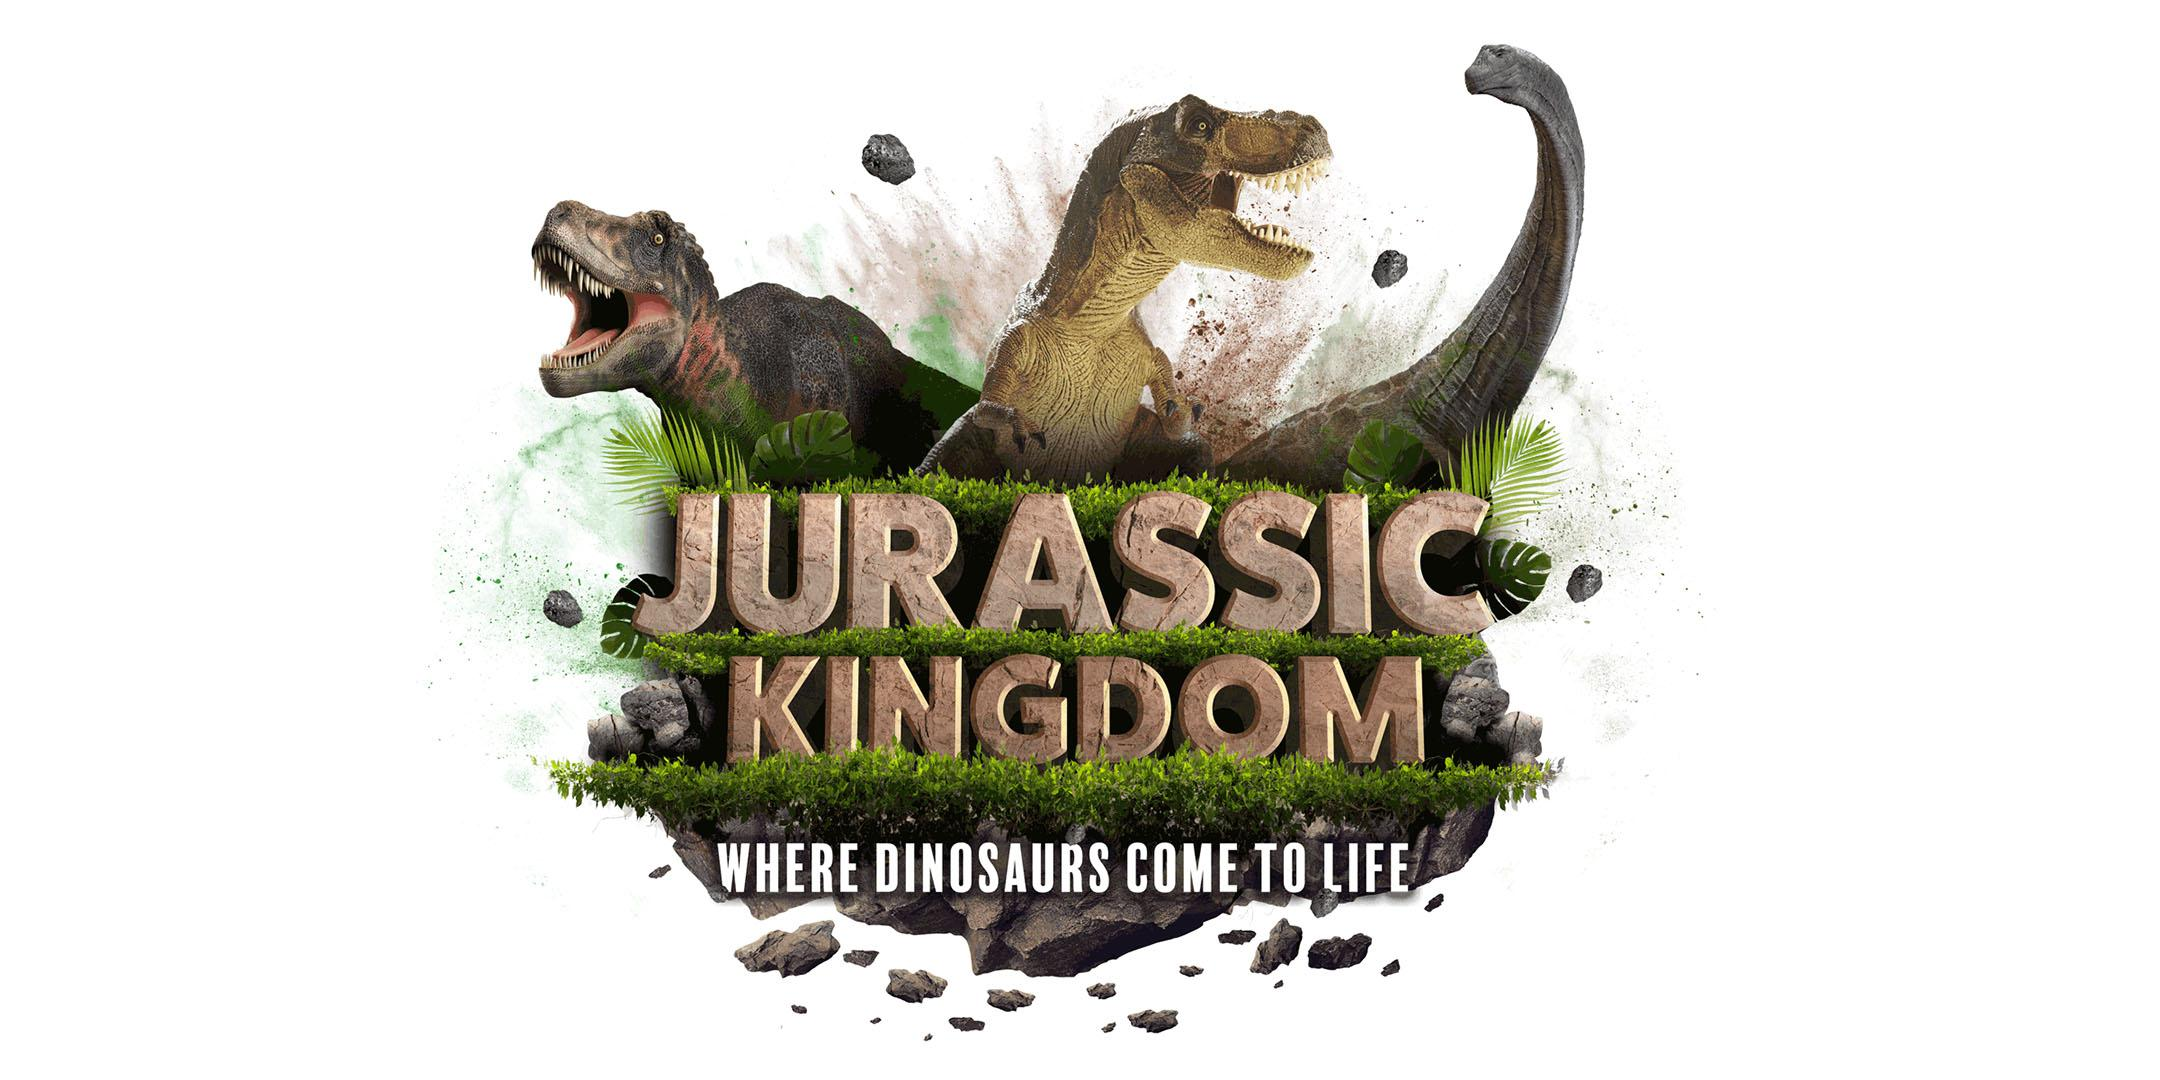 Jurassic Kingdom Tour Newcastle